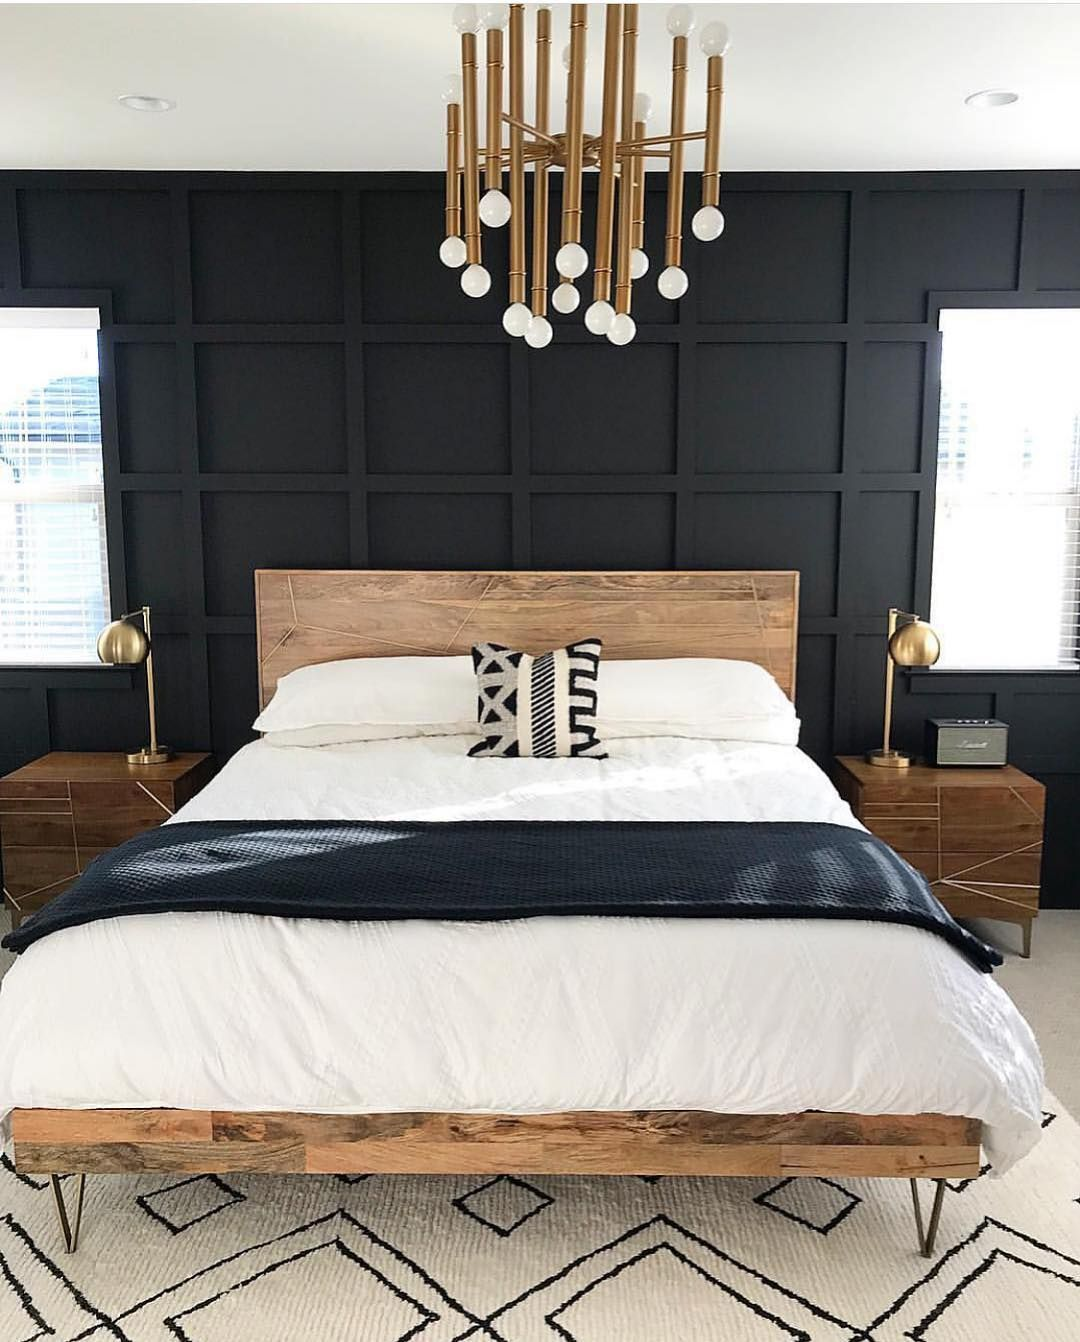 More Than Any Other Space In Our Houses Our Room Is The Sanctuary Where We Rest And Breathe Sighs Of Home Decor Bedroom Bedroom Interior Master Bedrooms Decor